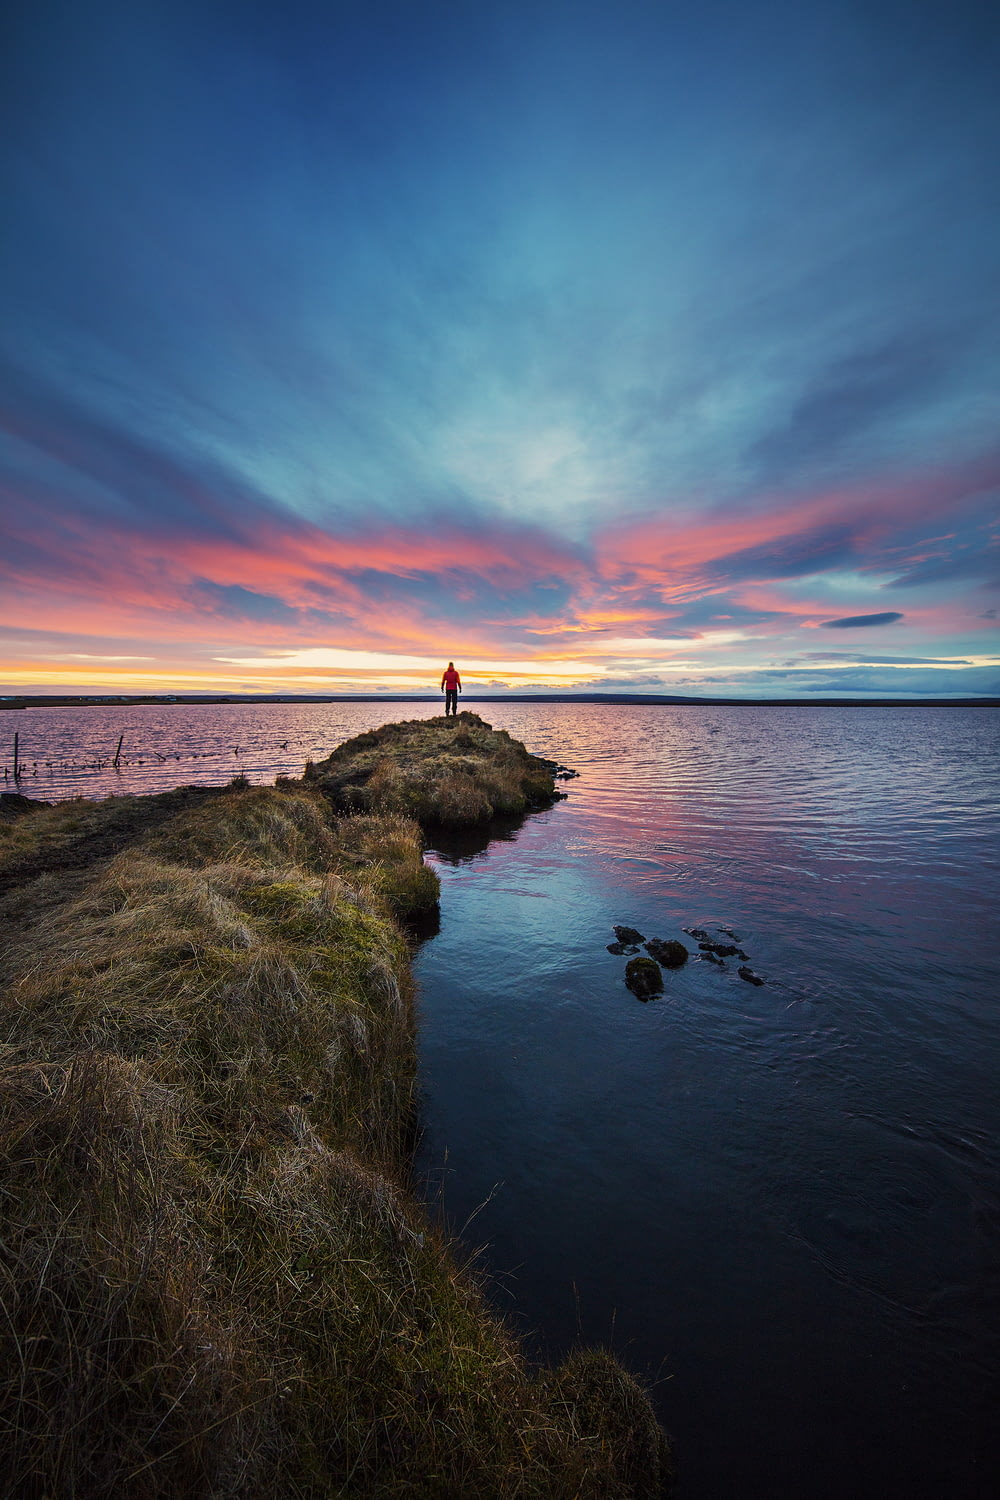 man stands on end of dike watching setting sun over sea